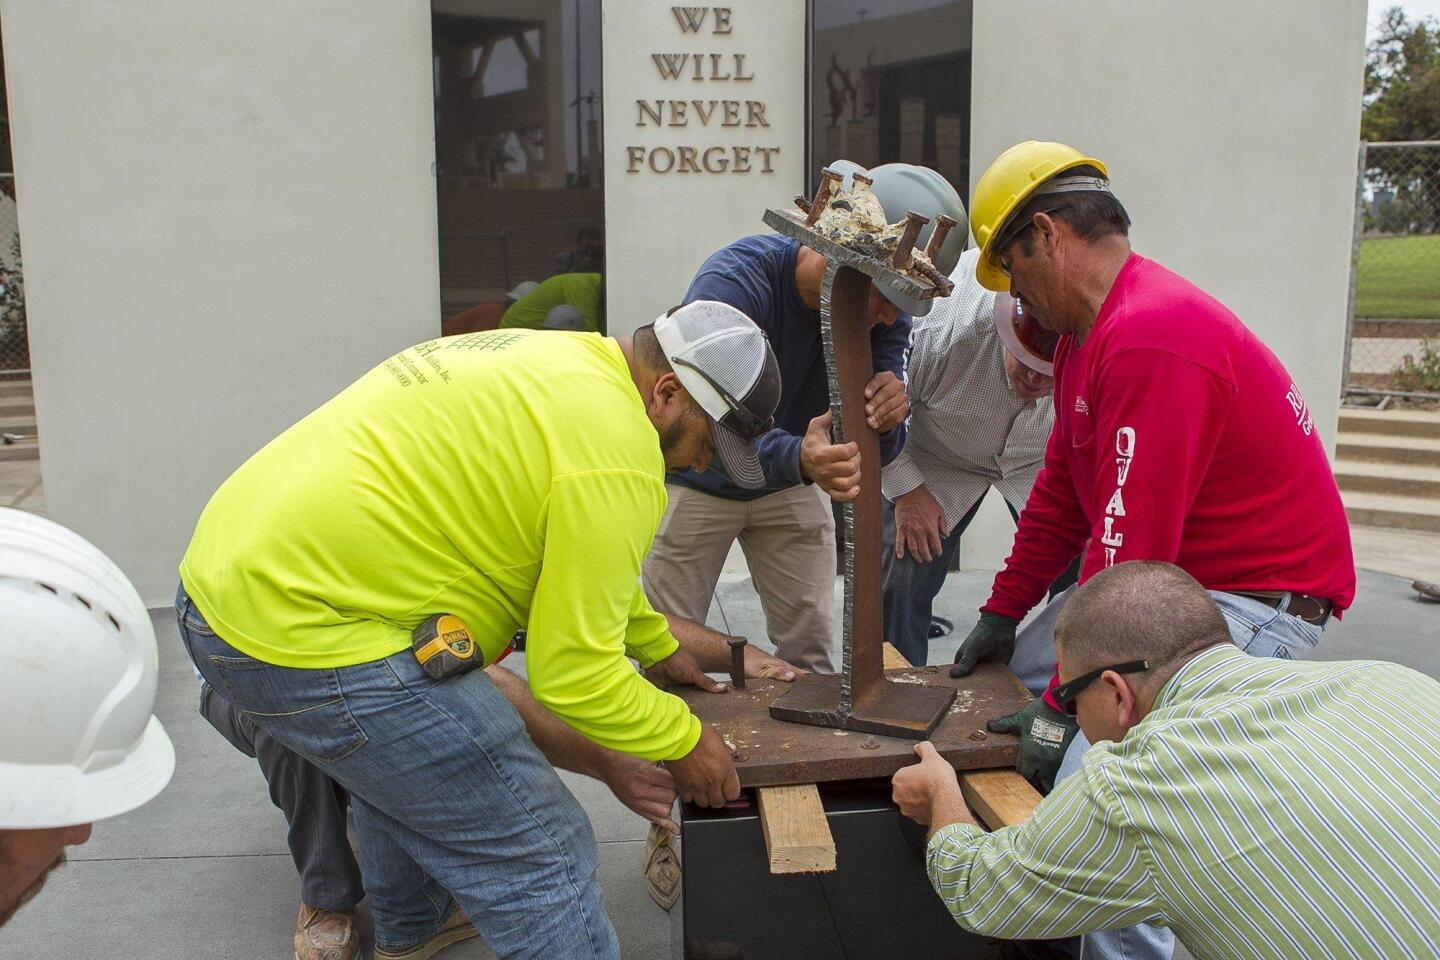 Employees with RBA Builders, Inc. work on the 9/11 memorial outside the Huntington Beach City Hall on Wednesday.